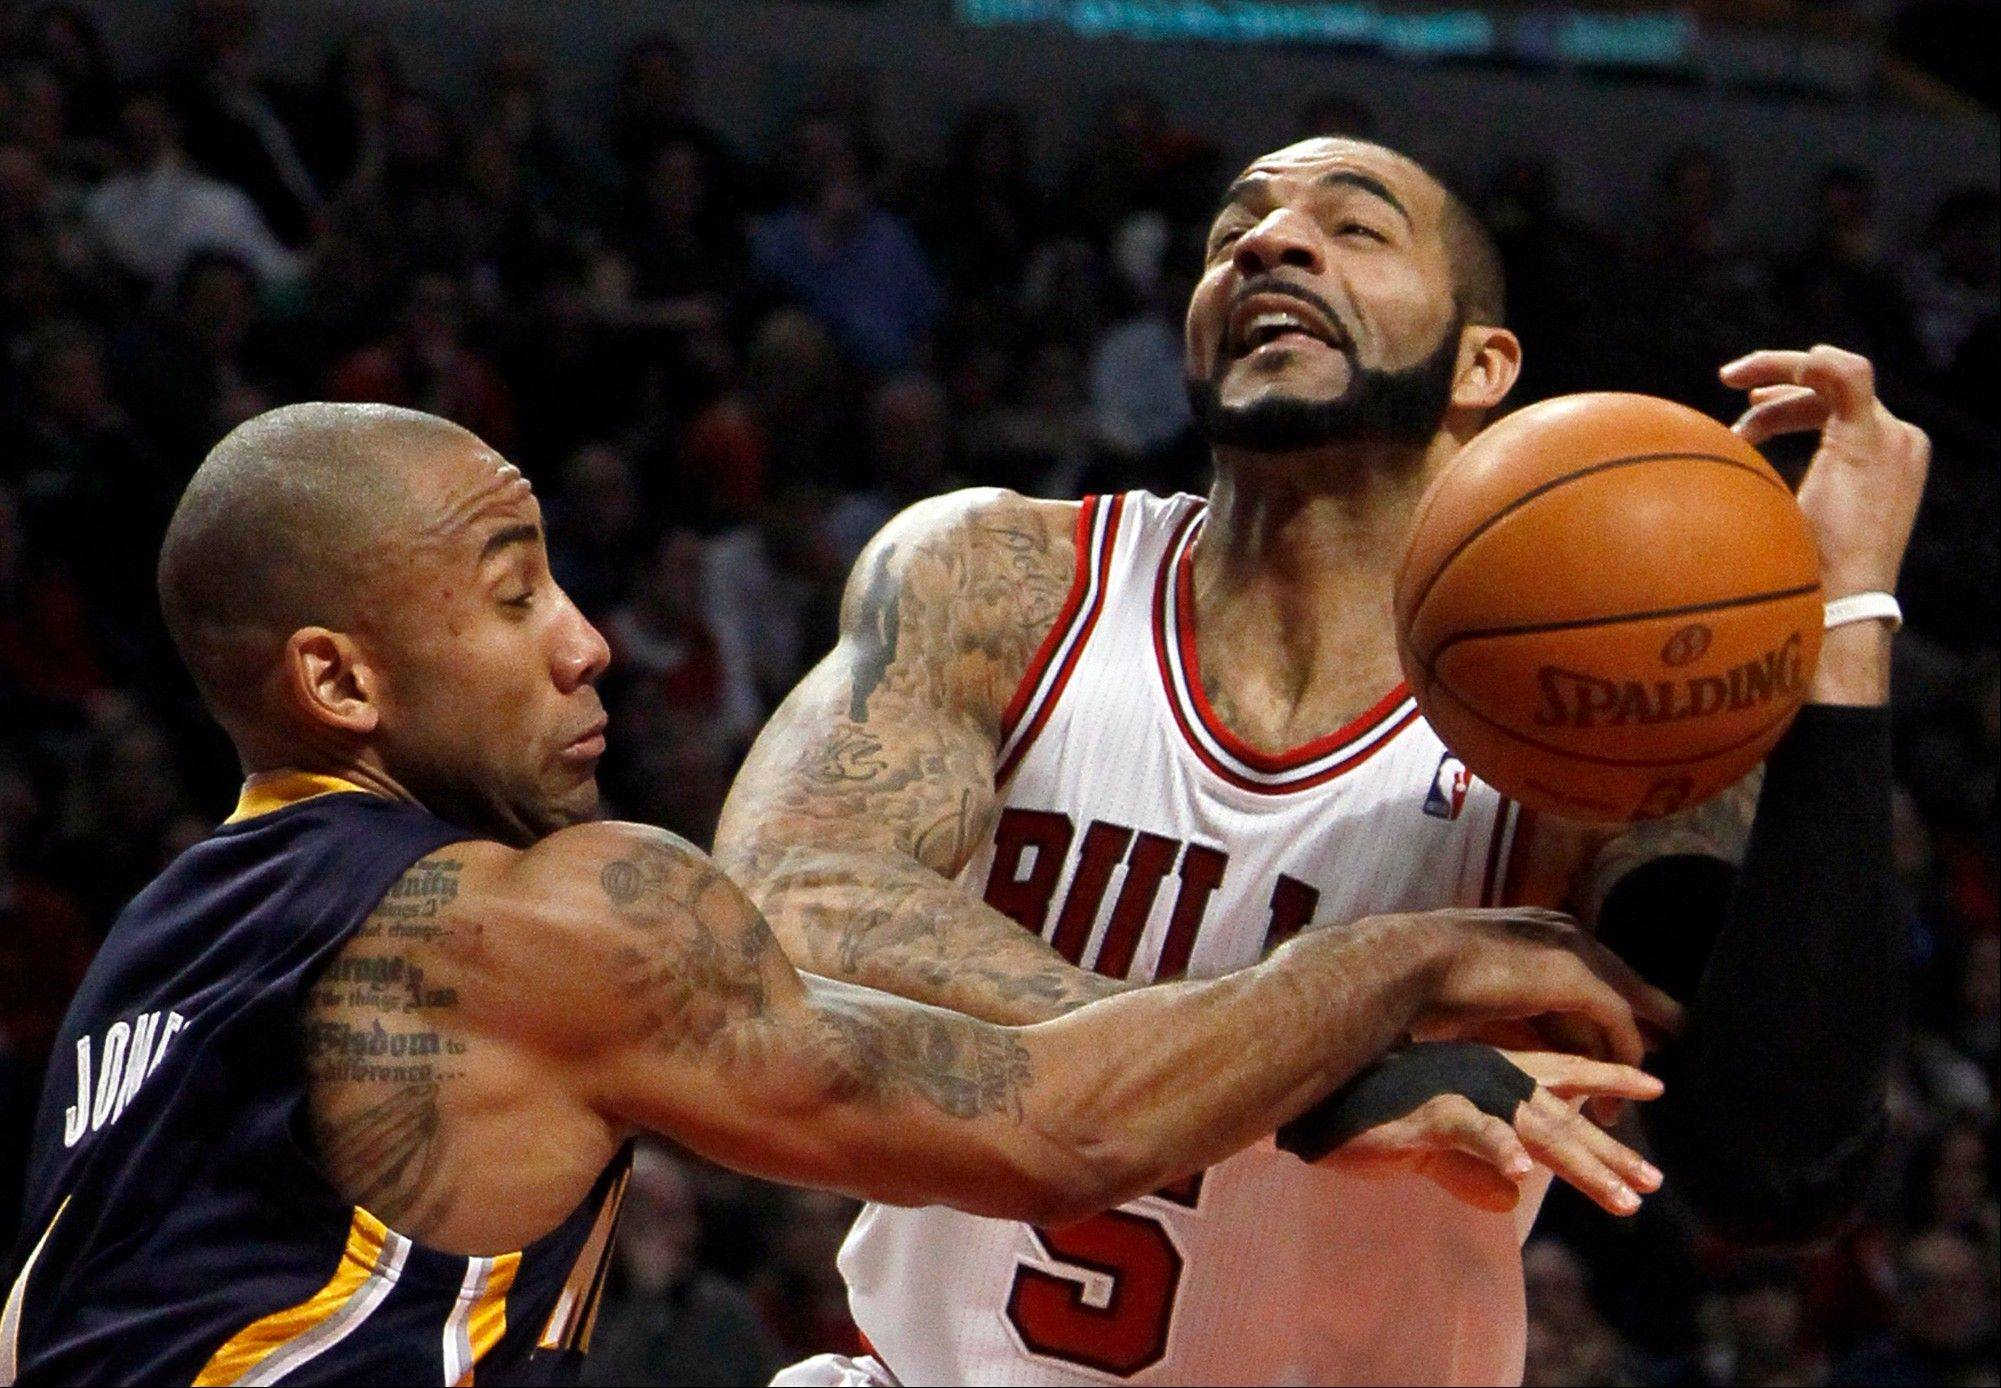 Indiana Pacers guard Dahntay Jones fouls Bulls forward Carlos Boozer Wednesday during the first half.